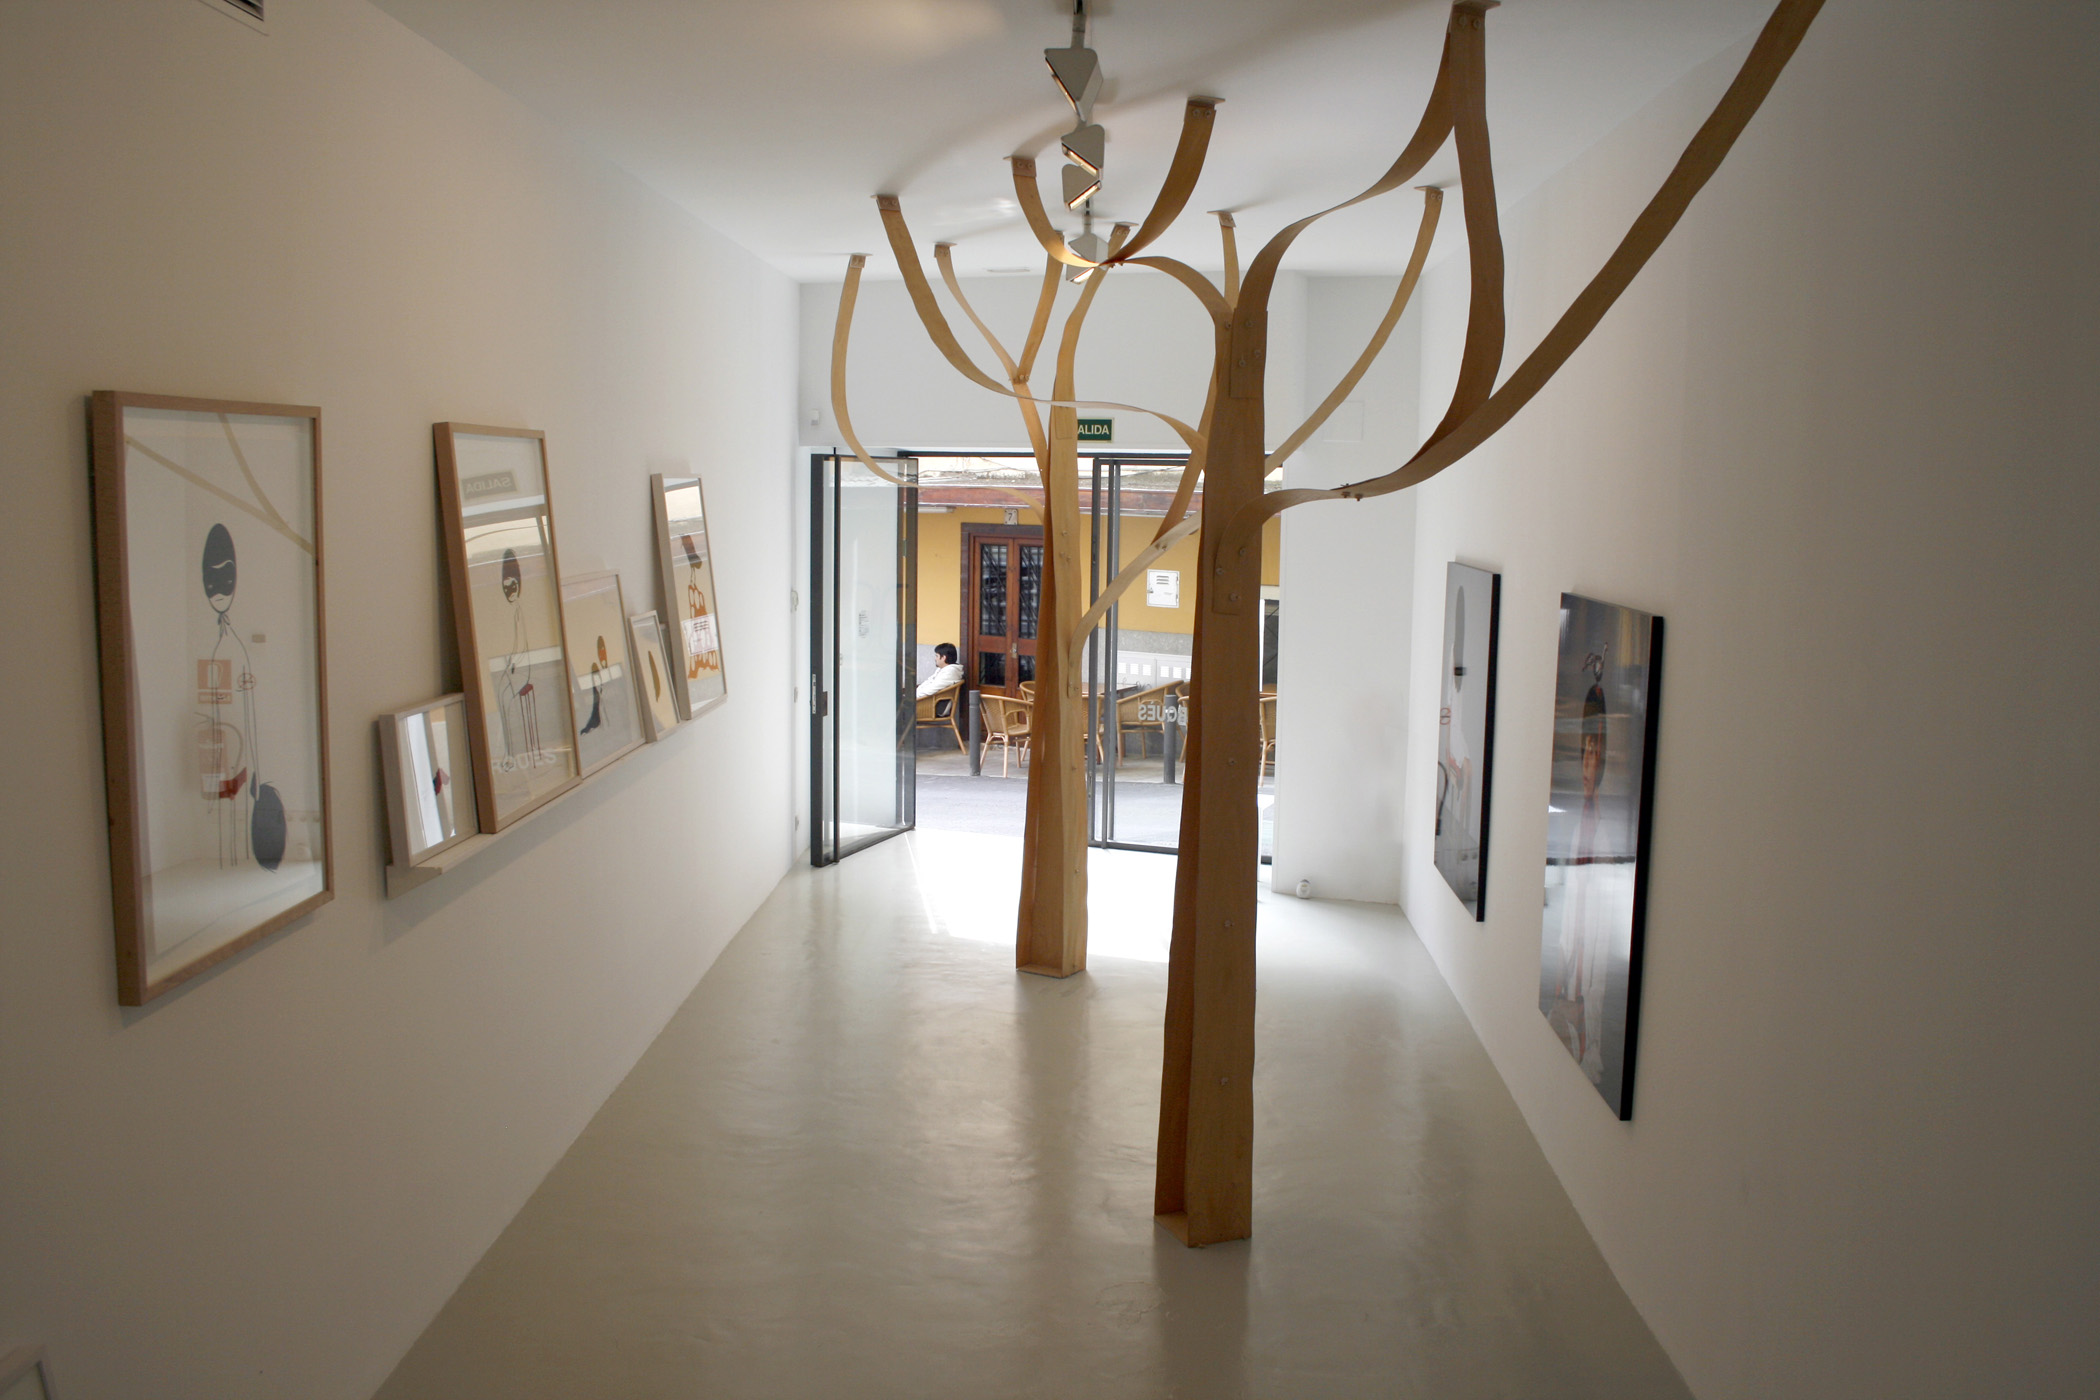 Exhibition view from Núria Marquès, 2008